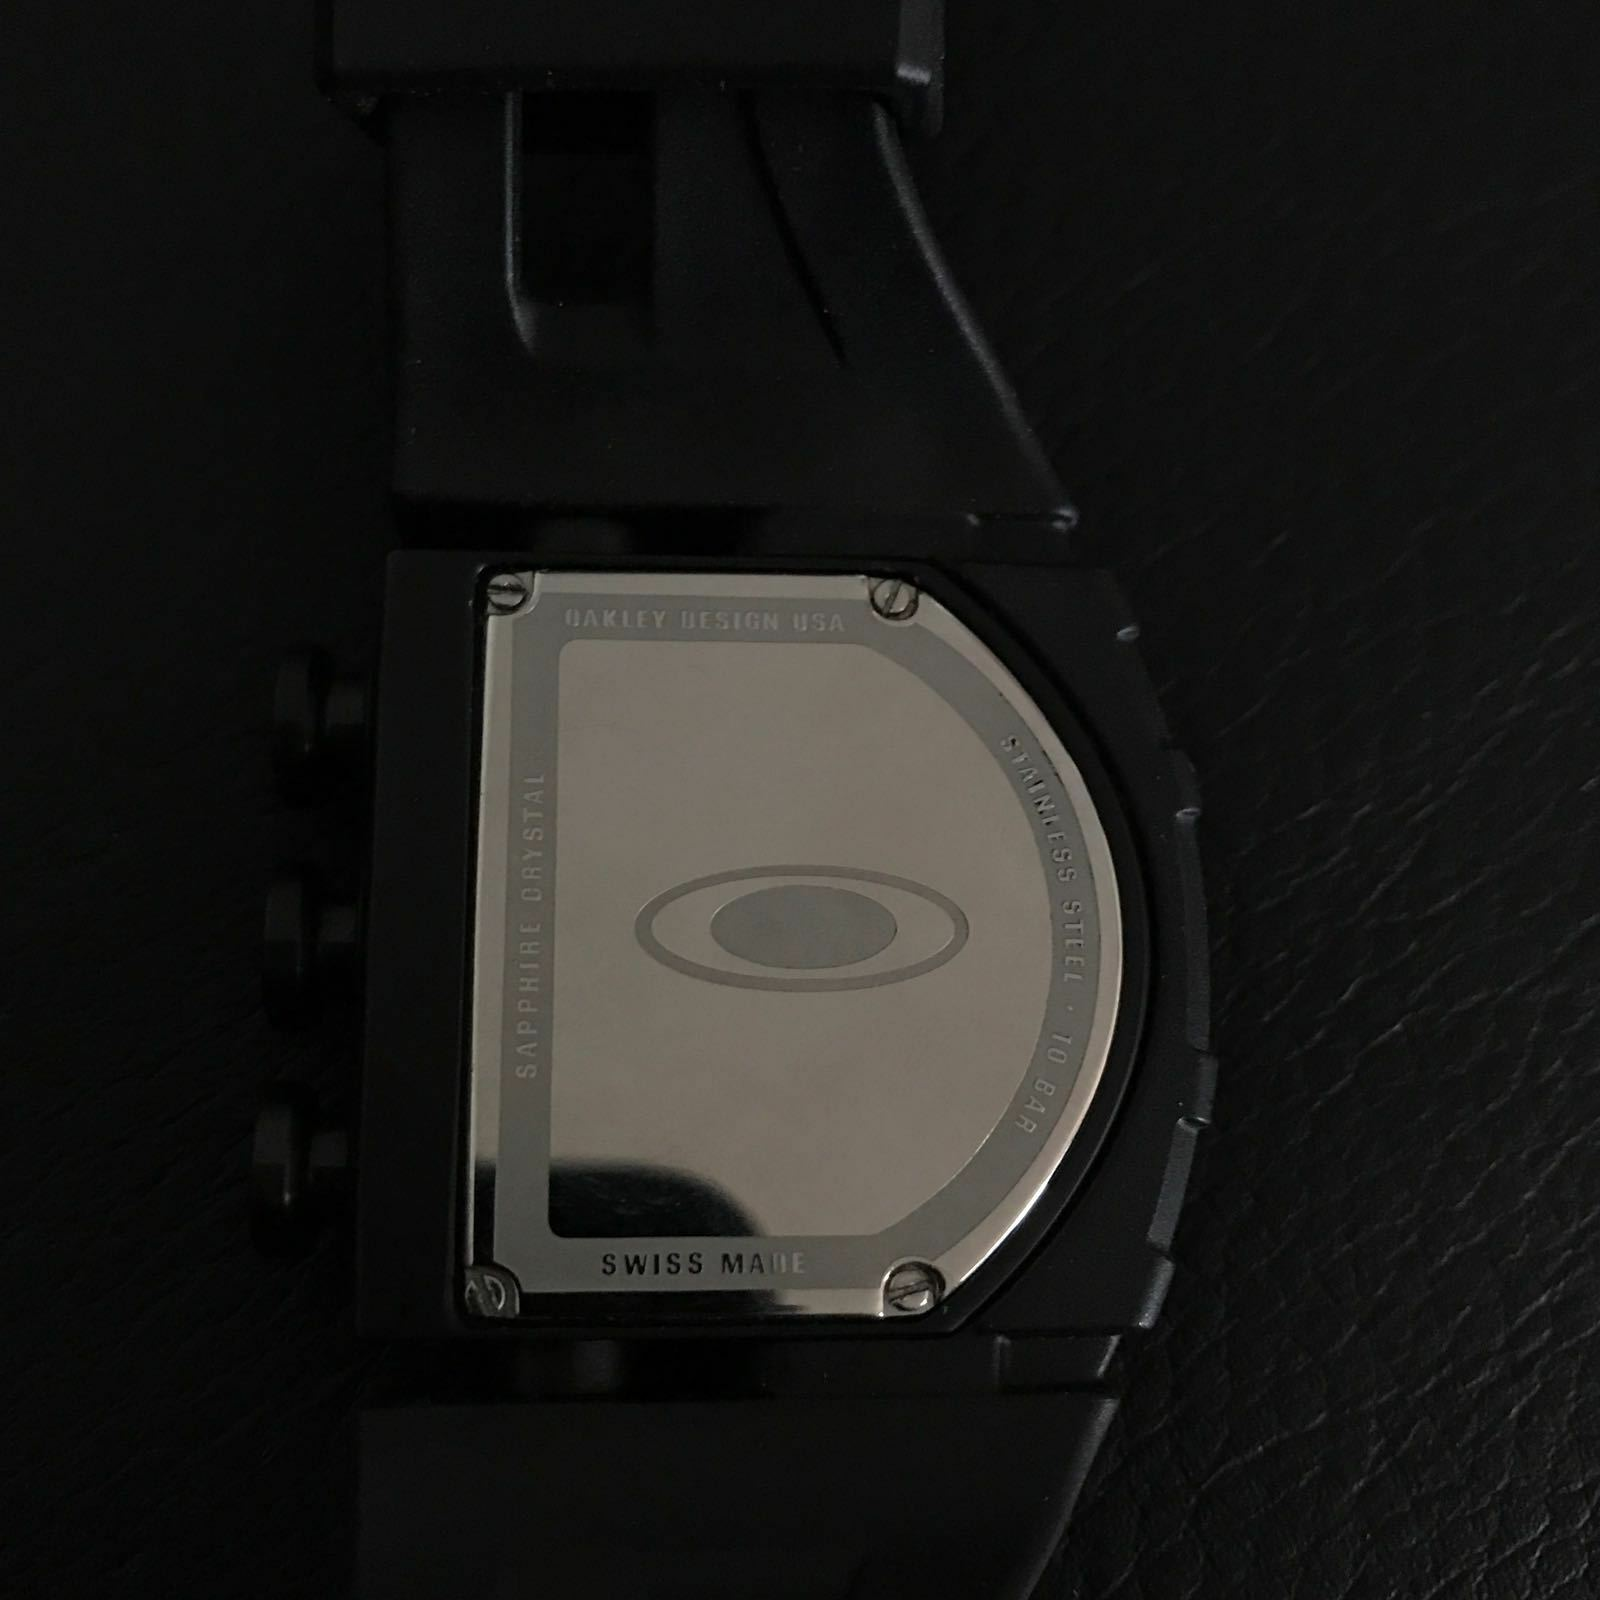 s l1600 oakley fuse box 26 300 wrist watch for men ebay oakley fuse box watch price at bakdesigns.co